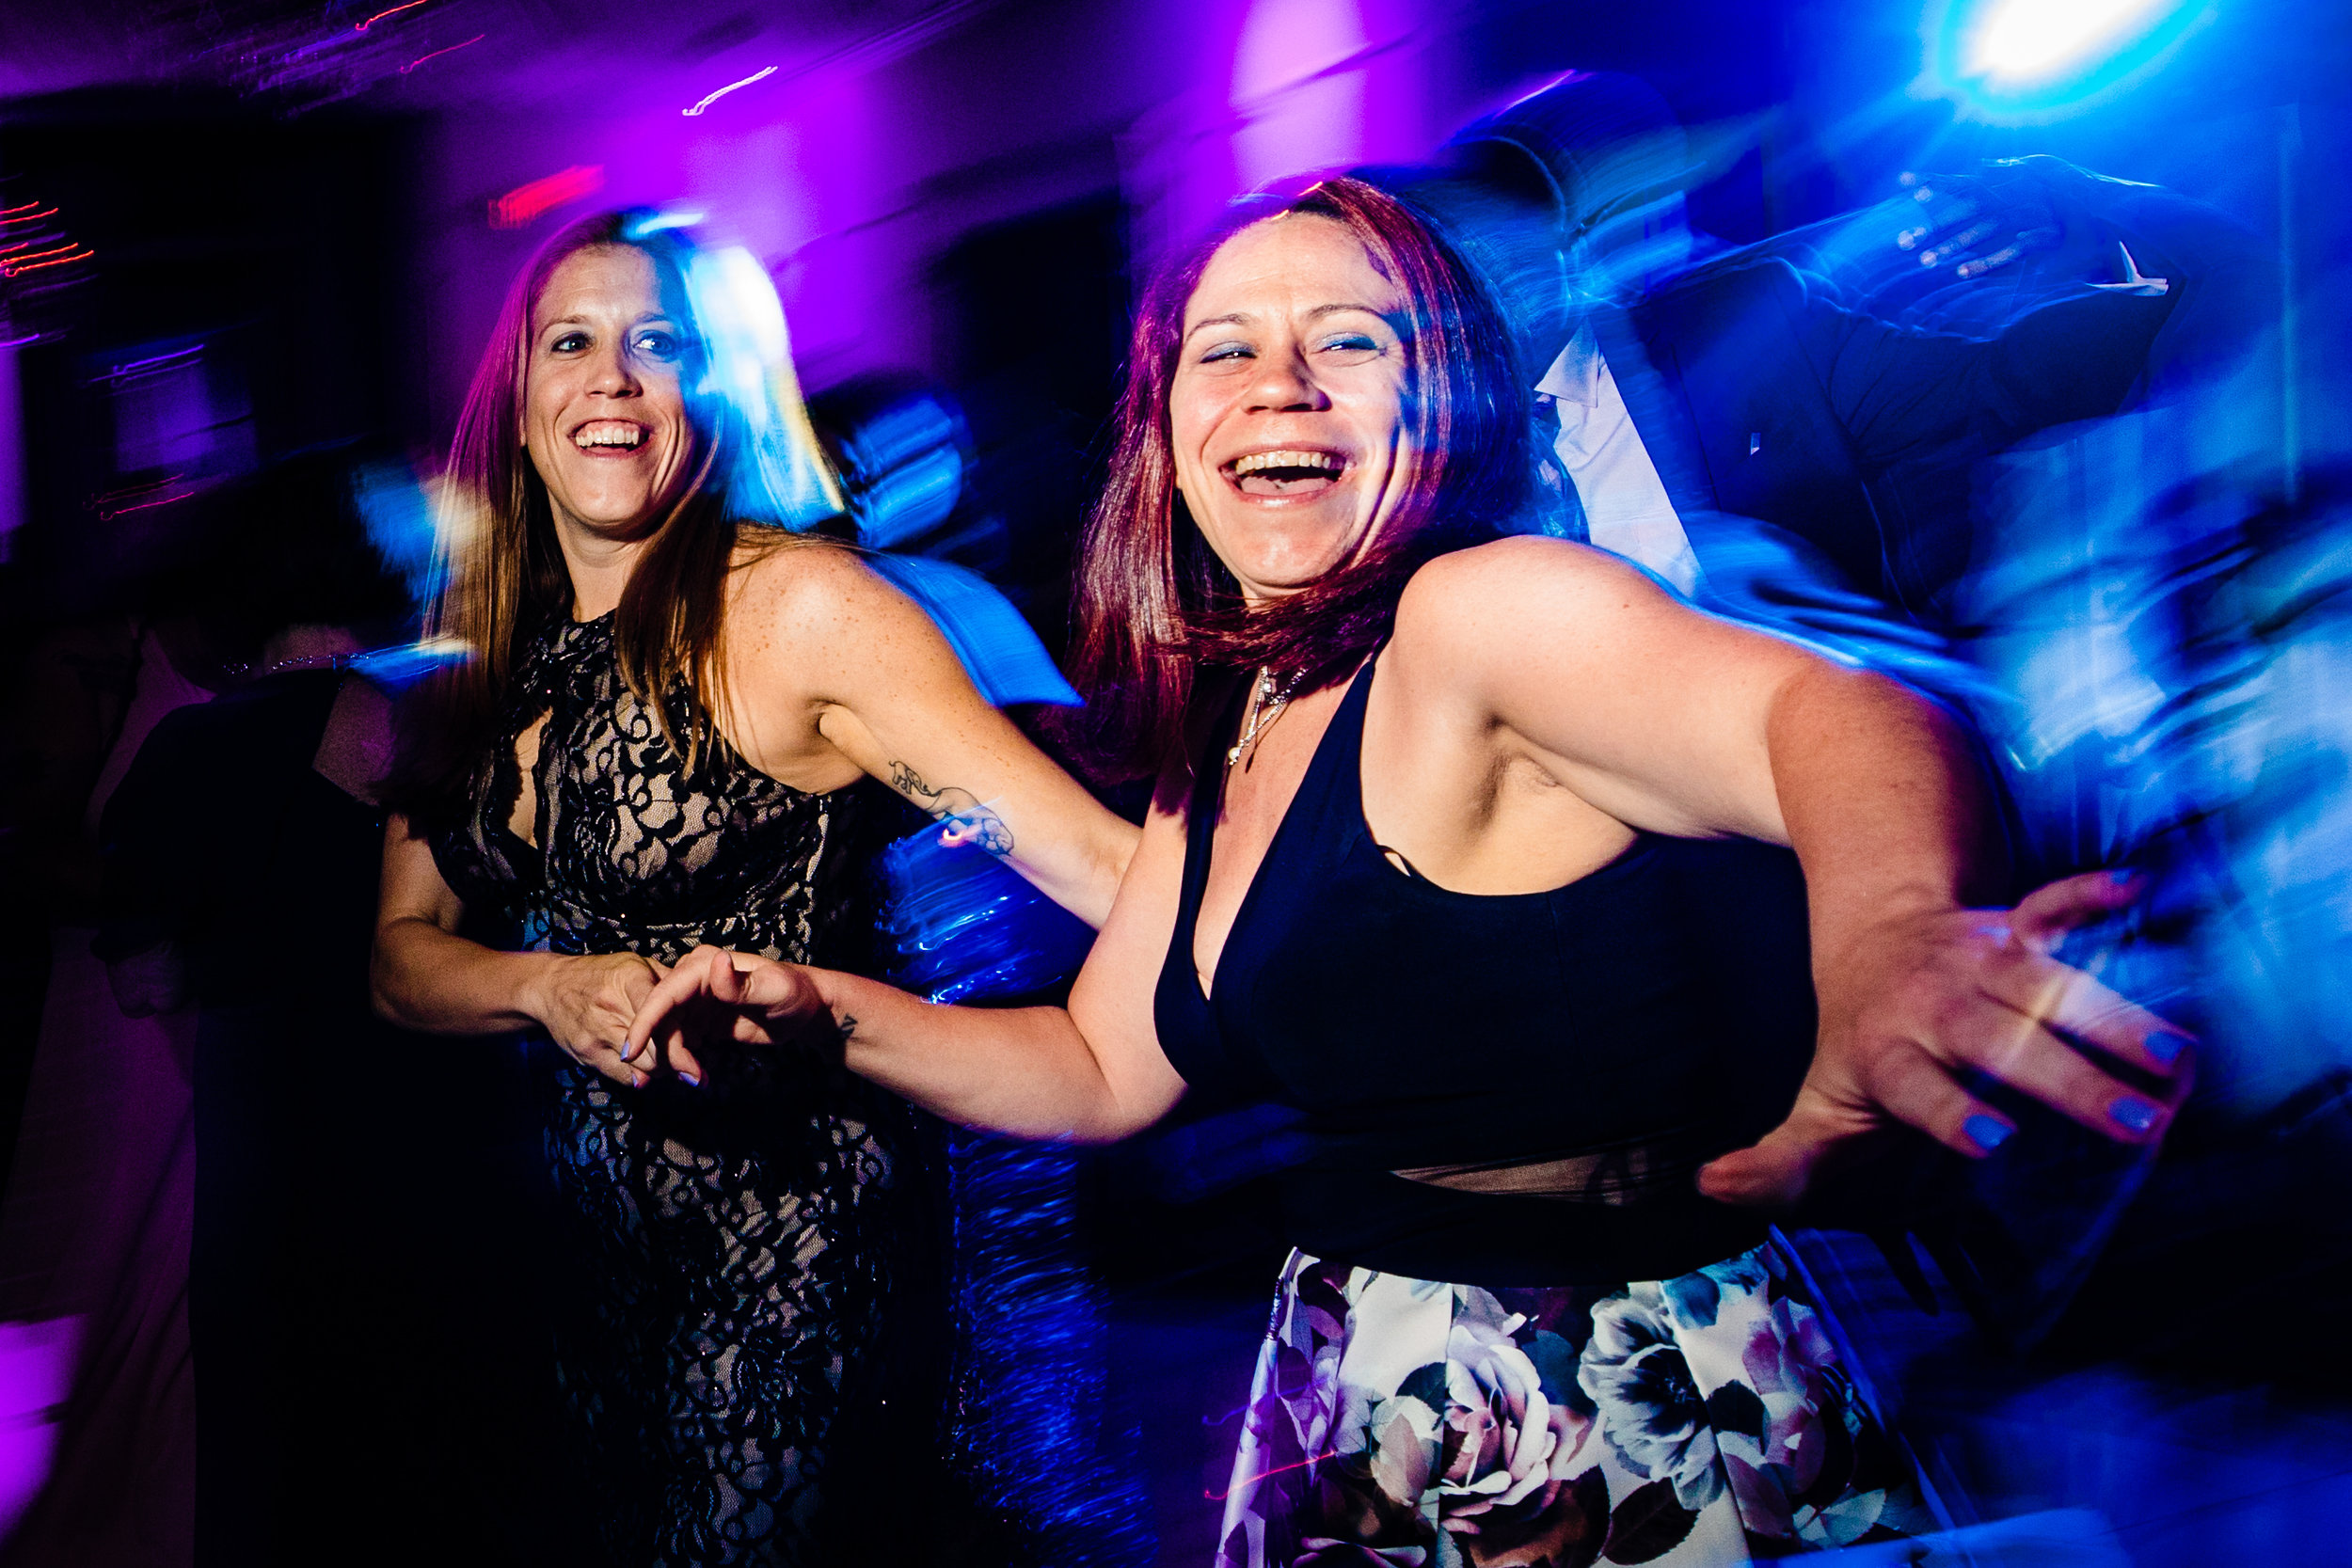 dancing fun crazy dance floor spinning colorful blue purple laug